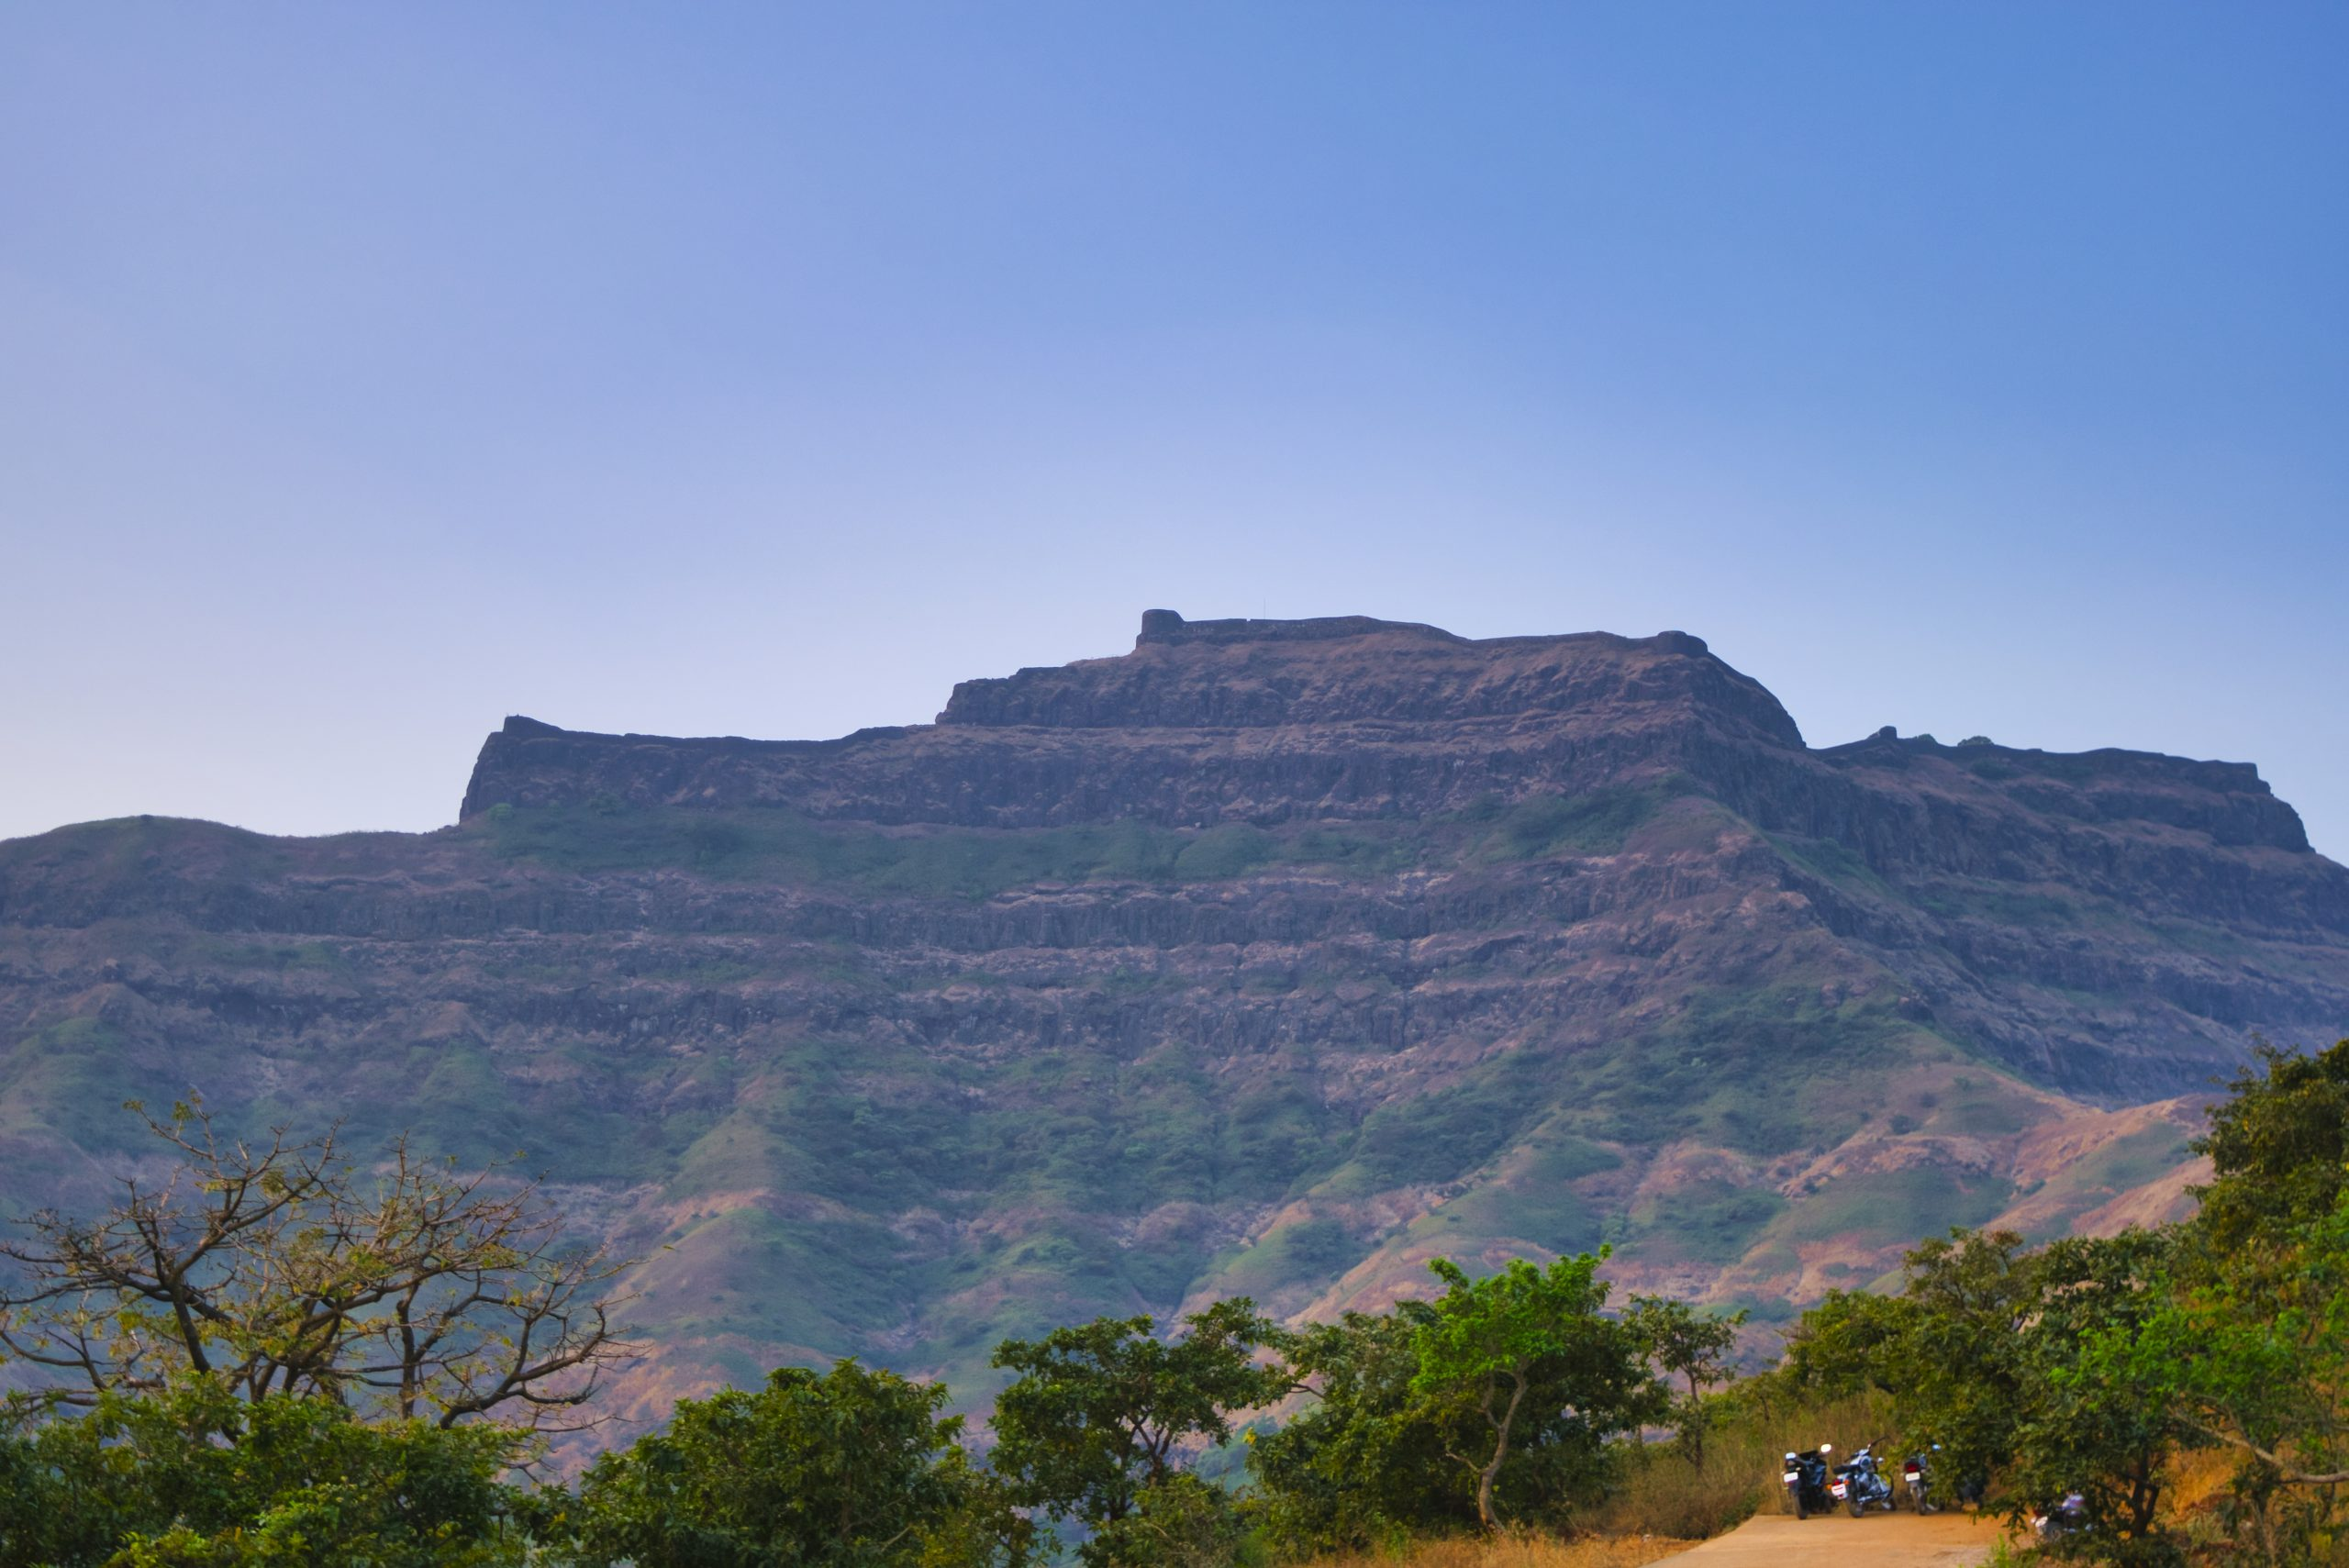 Torna Fort View in Pune